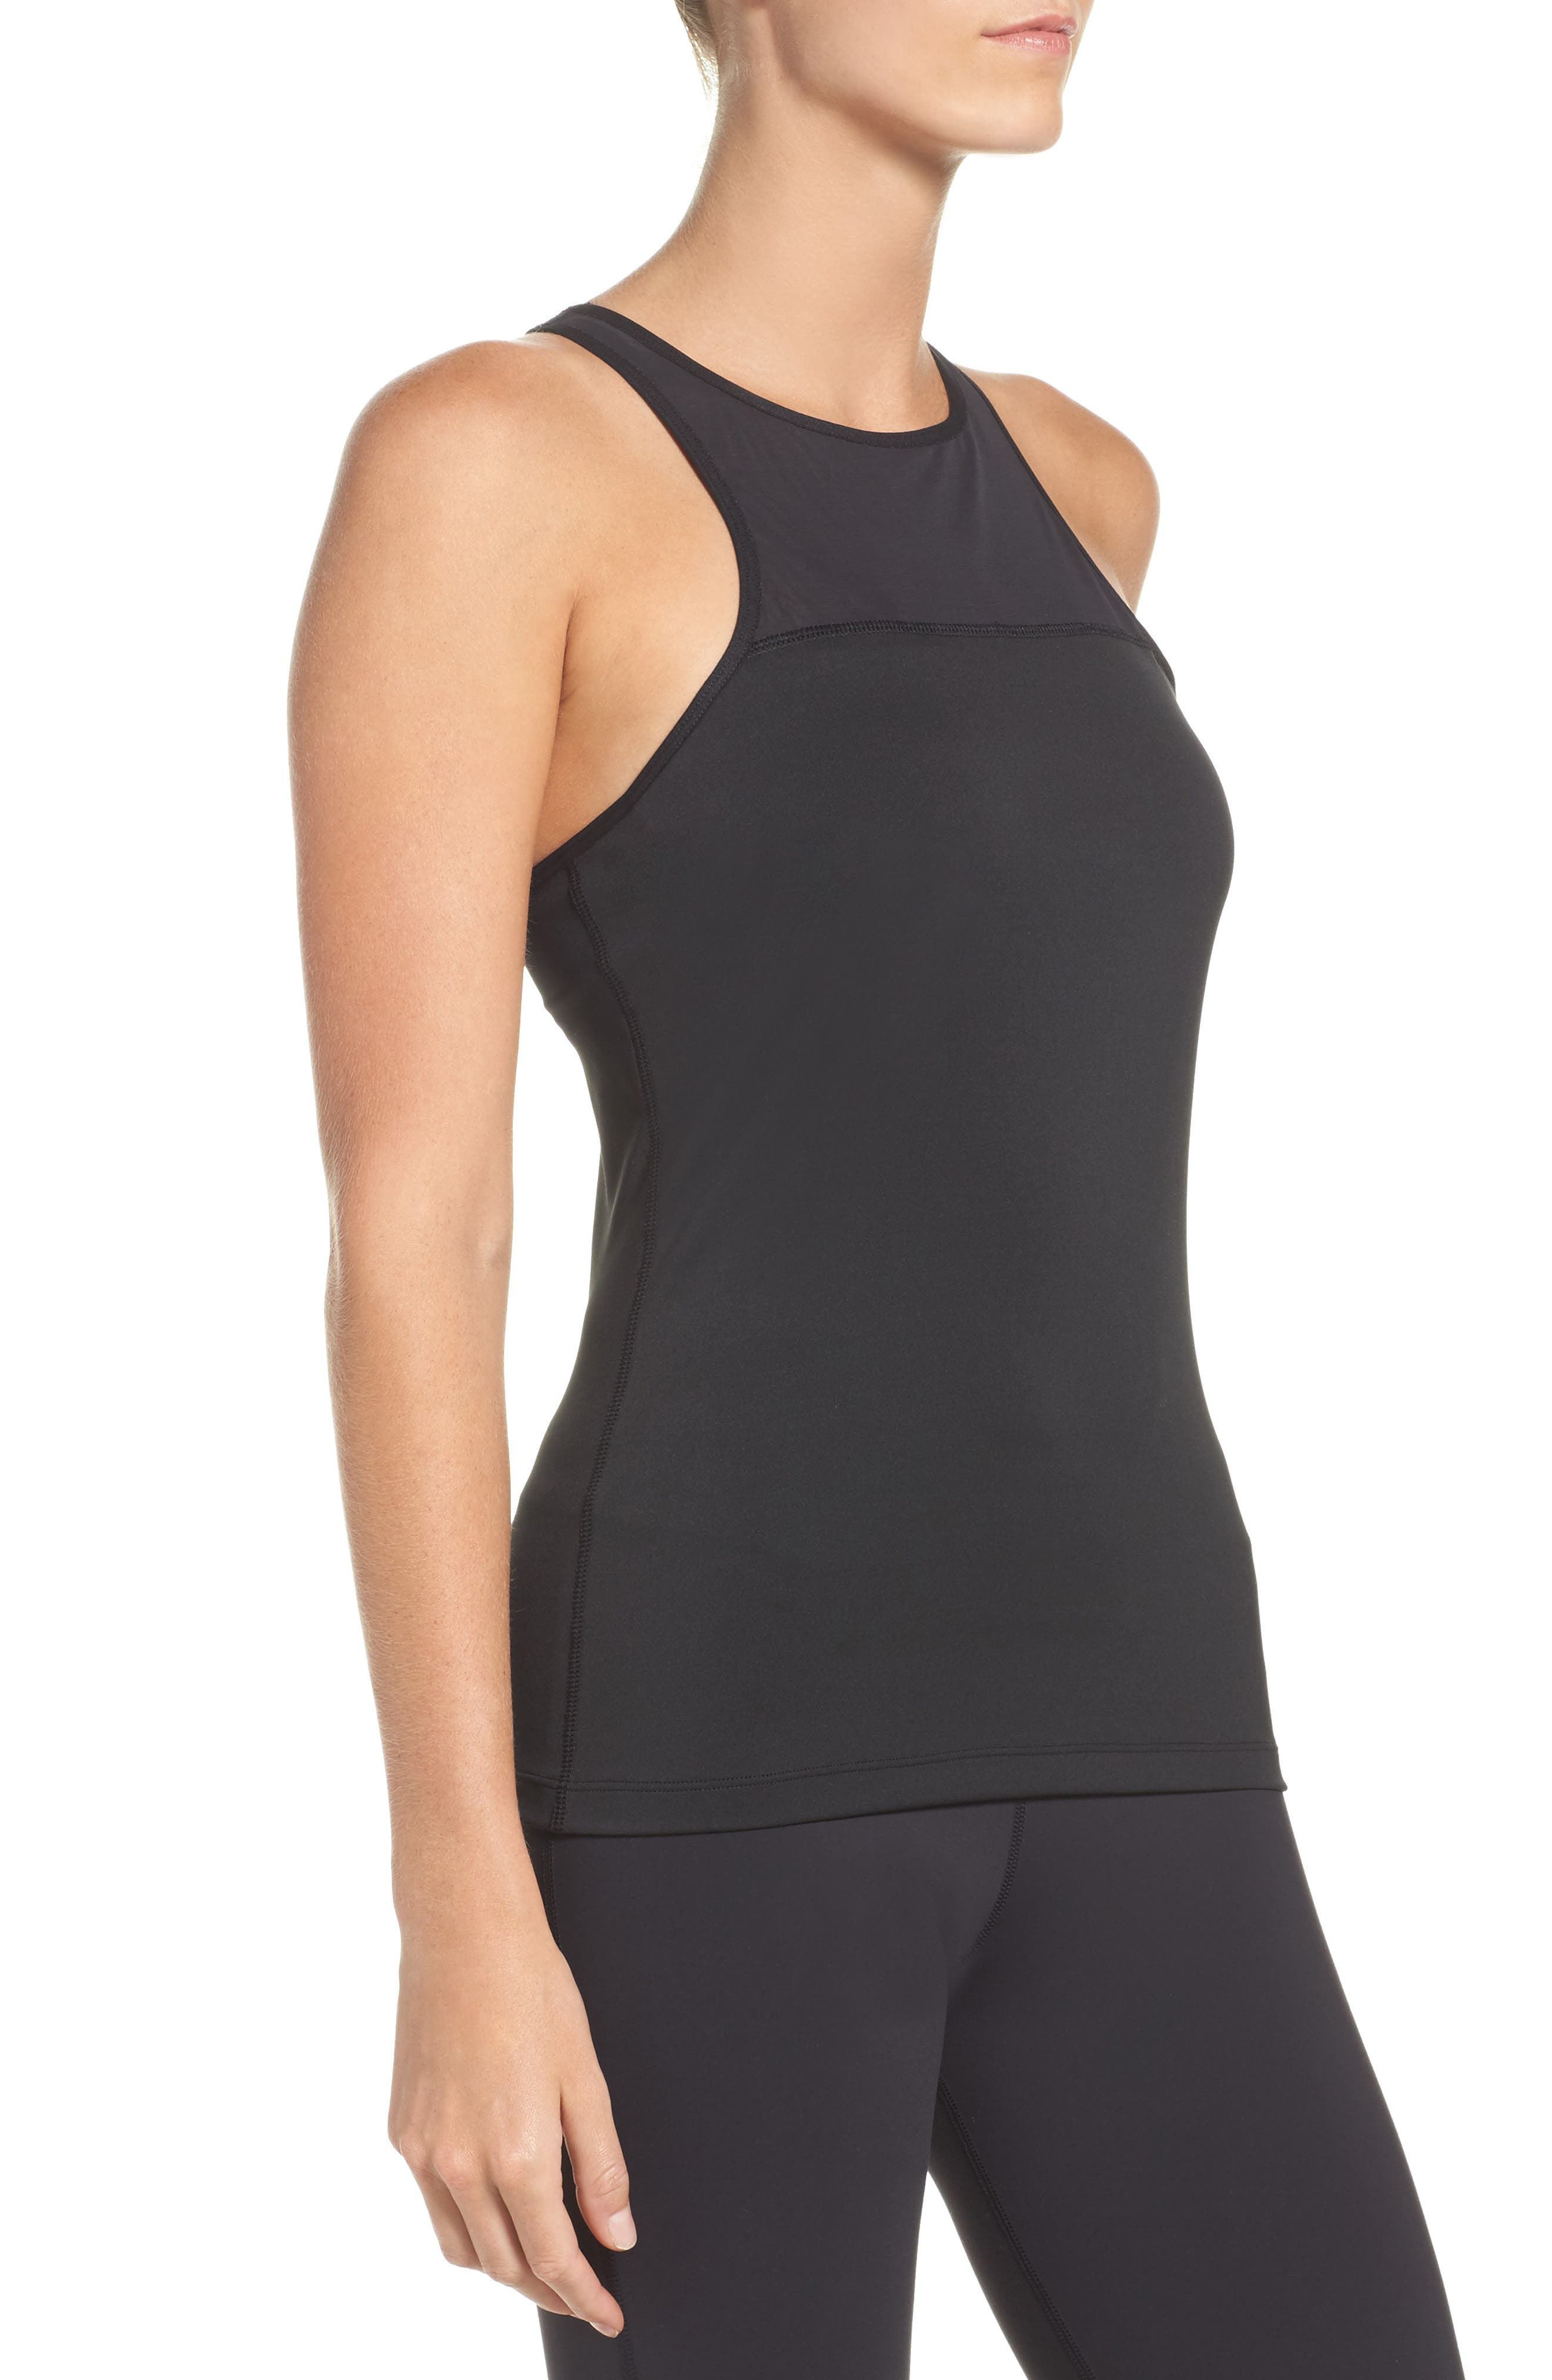 Speedwick Built-In Sports Bra Tank,                             Alternate thumbnail 3, color,                             005